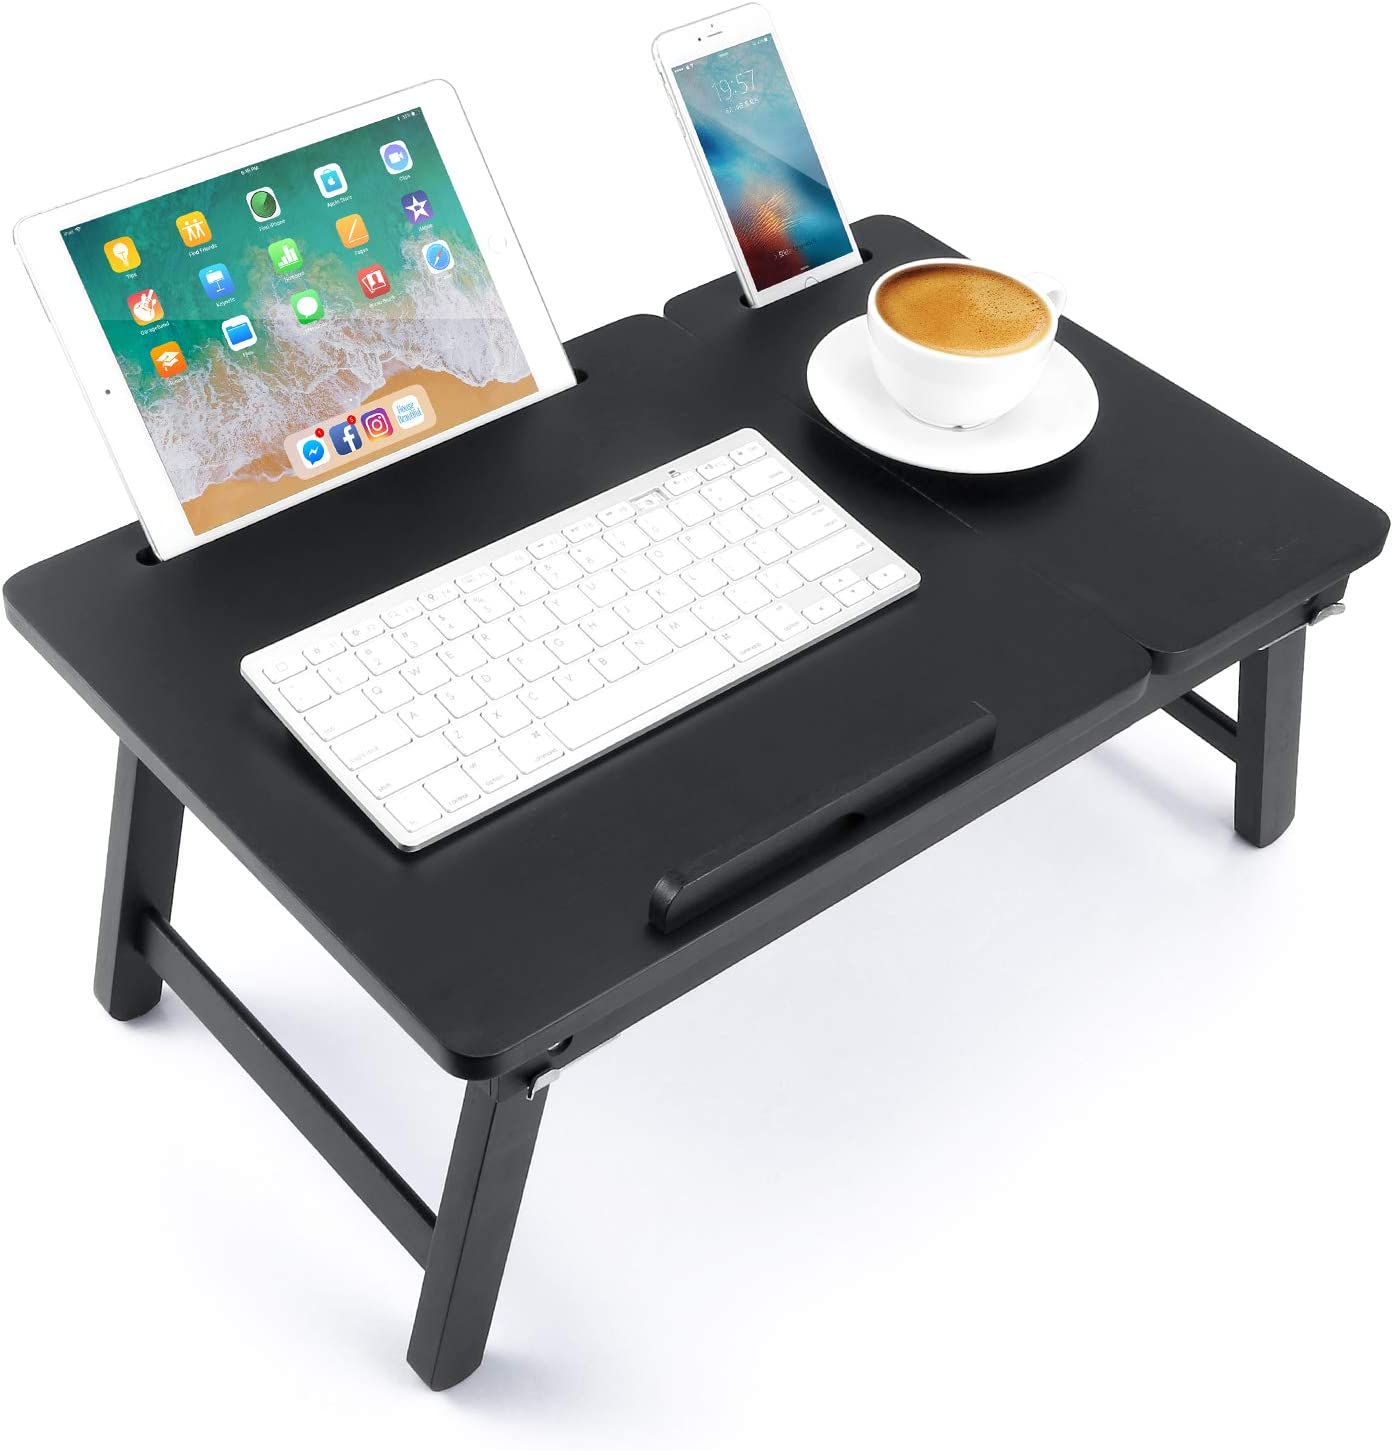 Lap Desk Nnewvante Bed Tray Table Foldable Laptop Desk Bamboo Breakfast Serving Tray w' Tilting Top Drawer Tablet Slots, Black